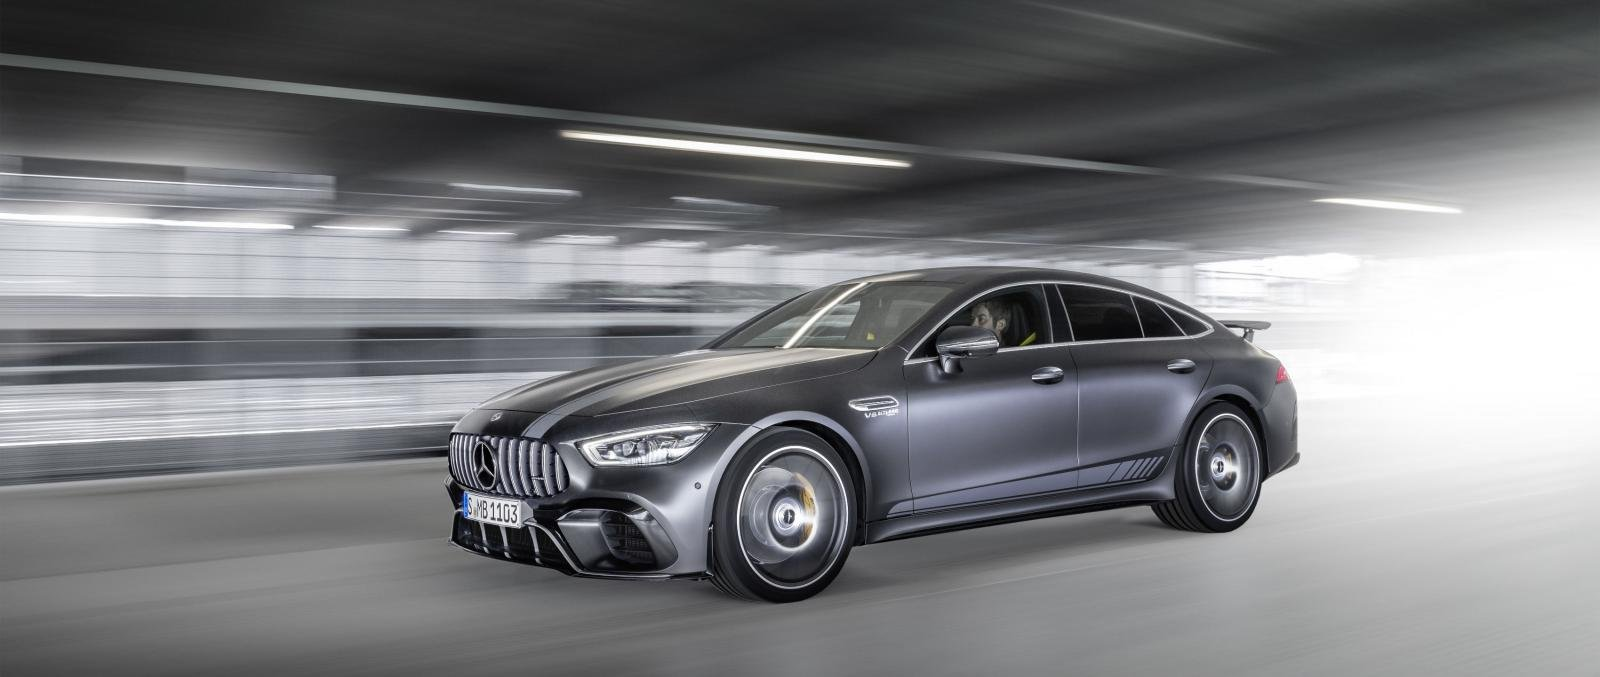 Mercedes-Benz AMG GT 63 S 4-Matic 4-Door Coupe Launched At Auto Expo 2020